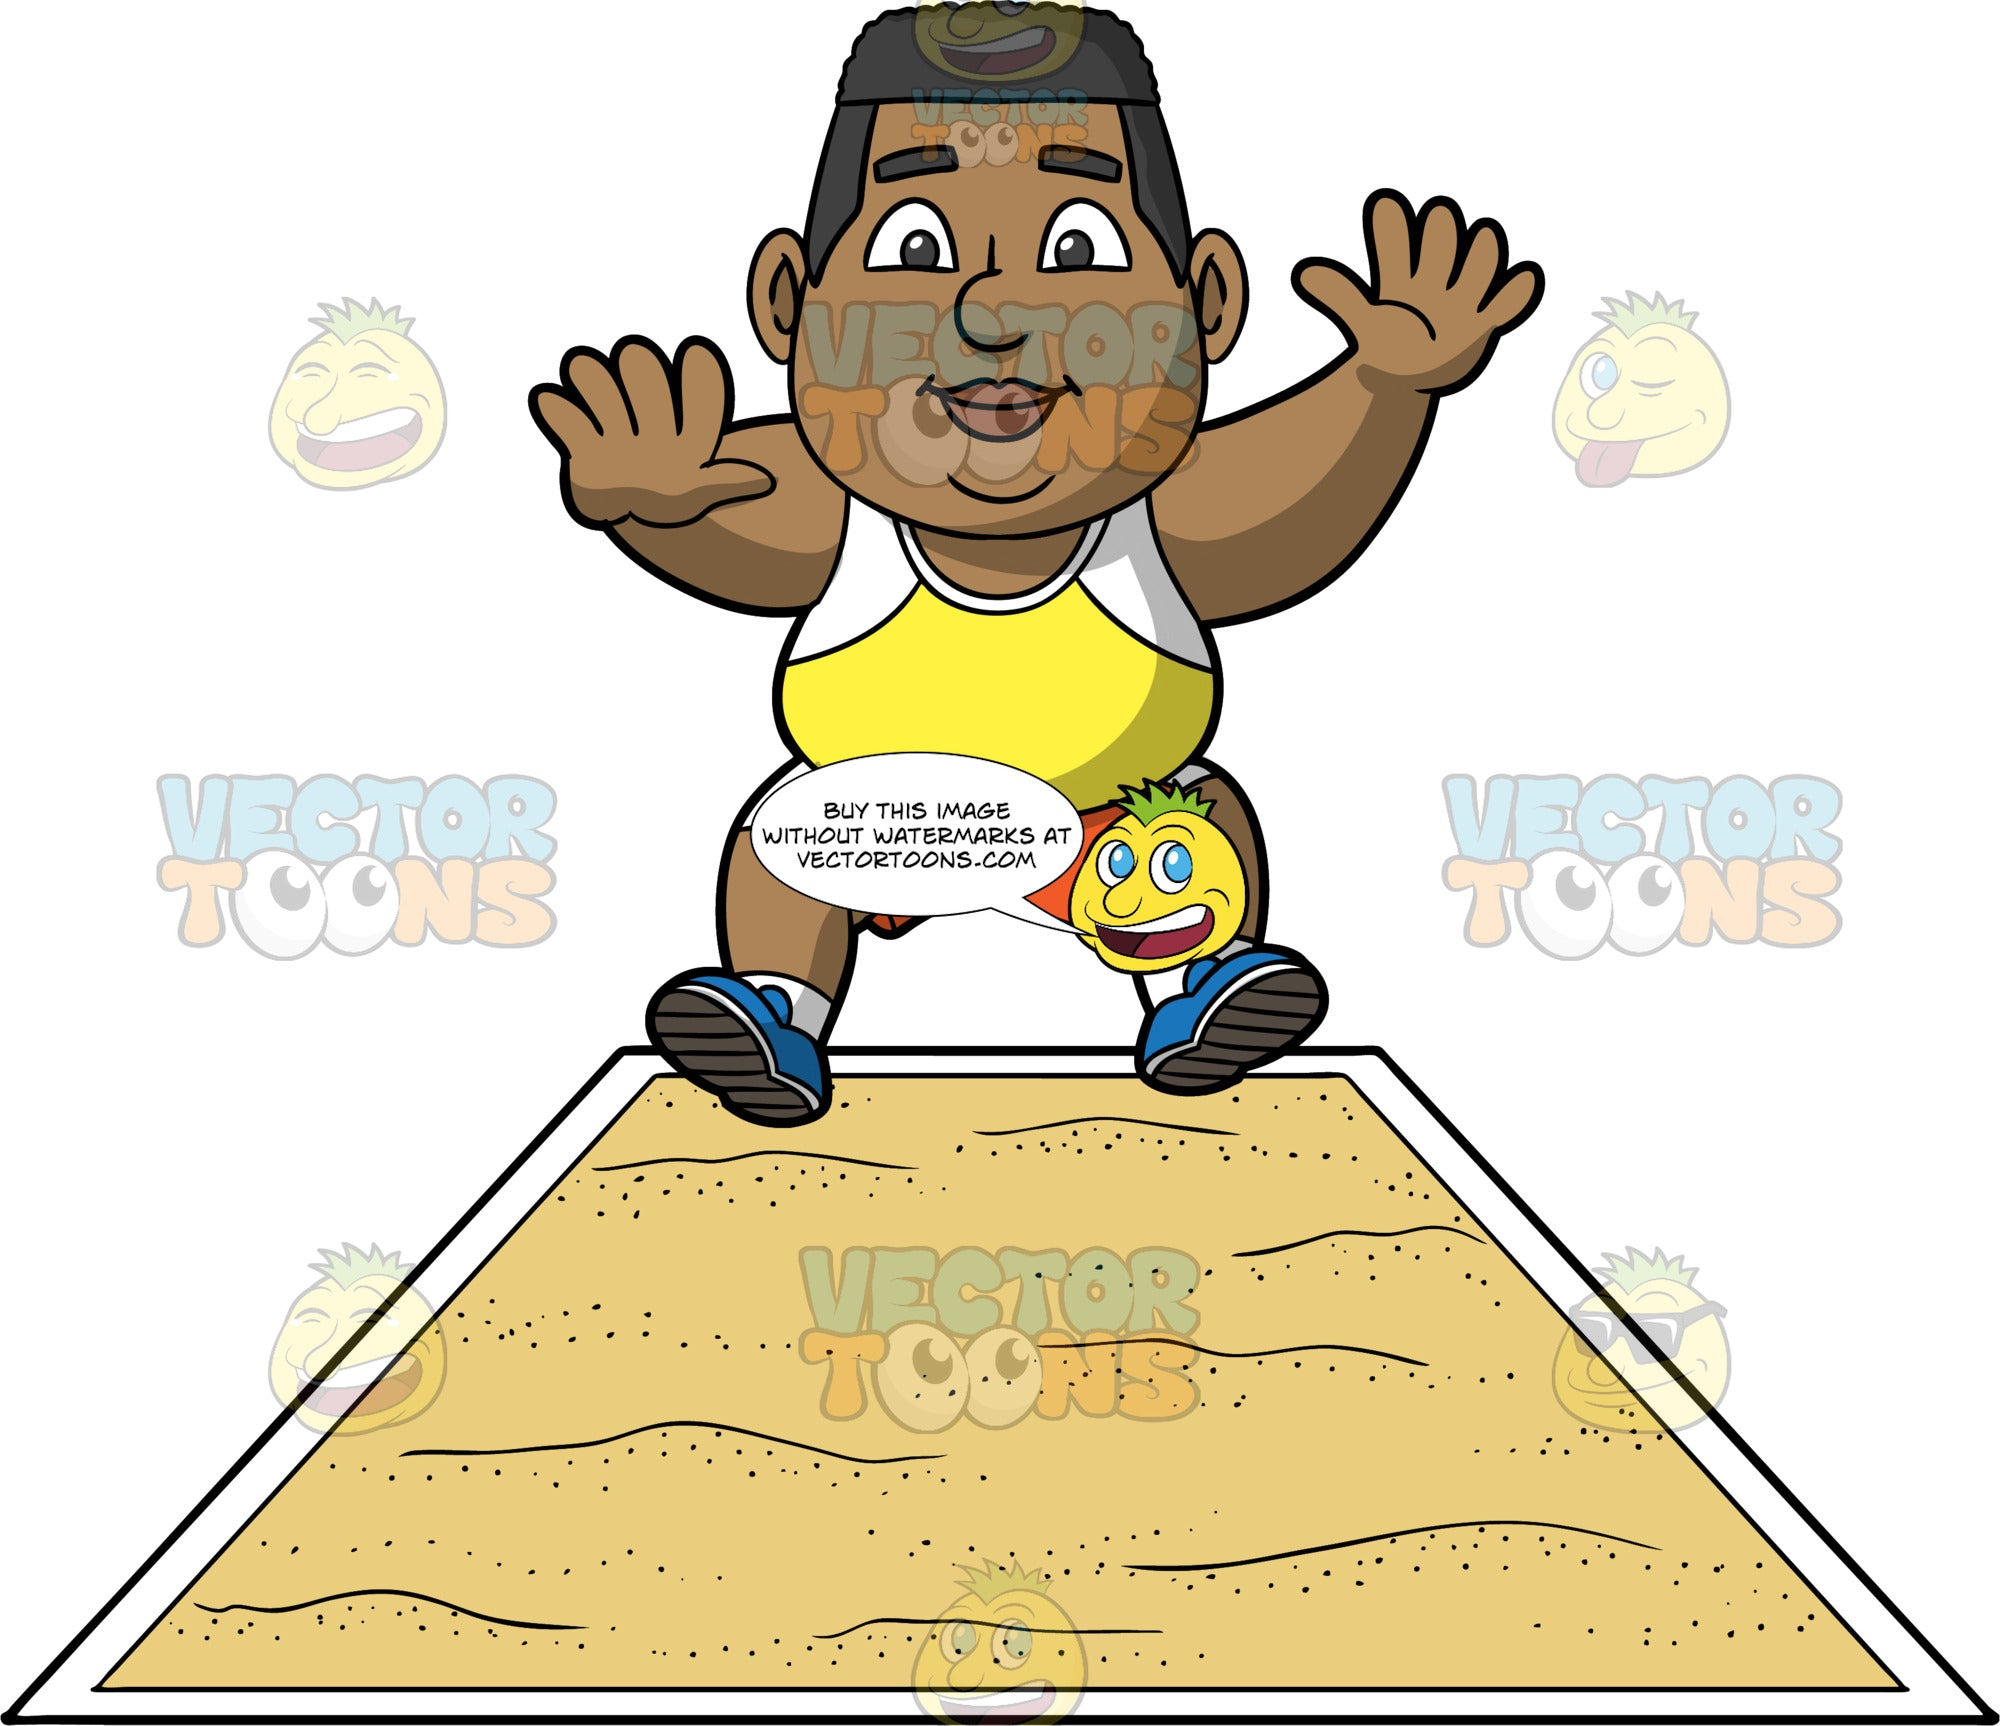 James Preparing To Land In The Long Jump Pit. A chubby black man wearing orange shorts, a yellow and white tank top, and blue running shoes, prepares to land in the long jump pit during a competition